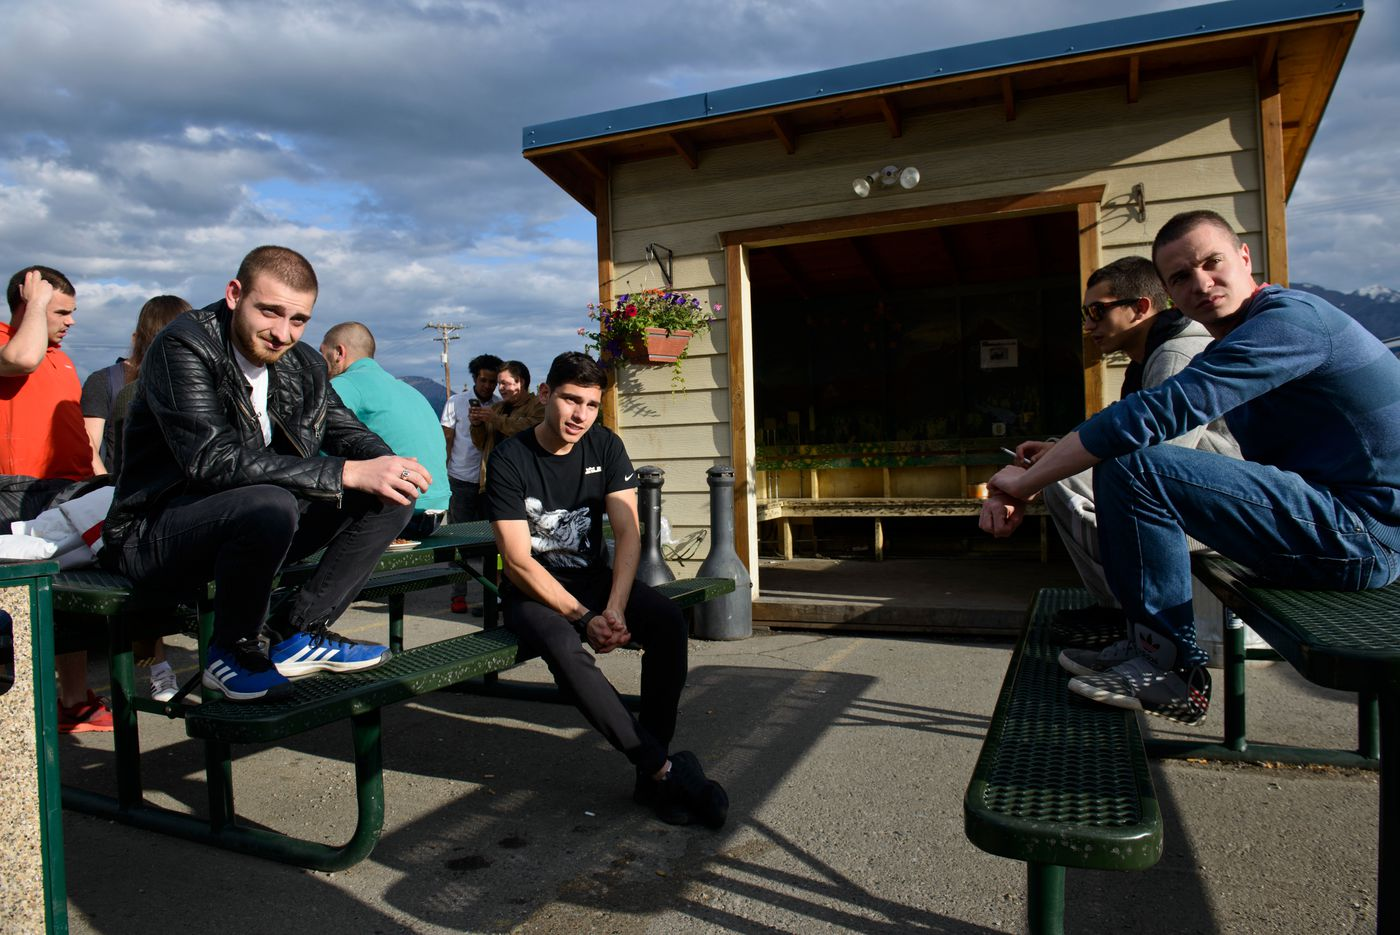 LubomirMarkov, Desislav Yordanov and Nedko Georgiev smoke and talk outside their housing in Healy. Yordanov works as a busser and the other two as housekeeping supervisors. They said working in a somewhat remote part of the state meant there were fewer places to spend money. (Marc Lester / Alaska Dispatch News)